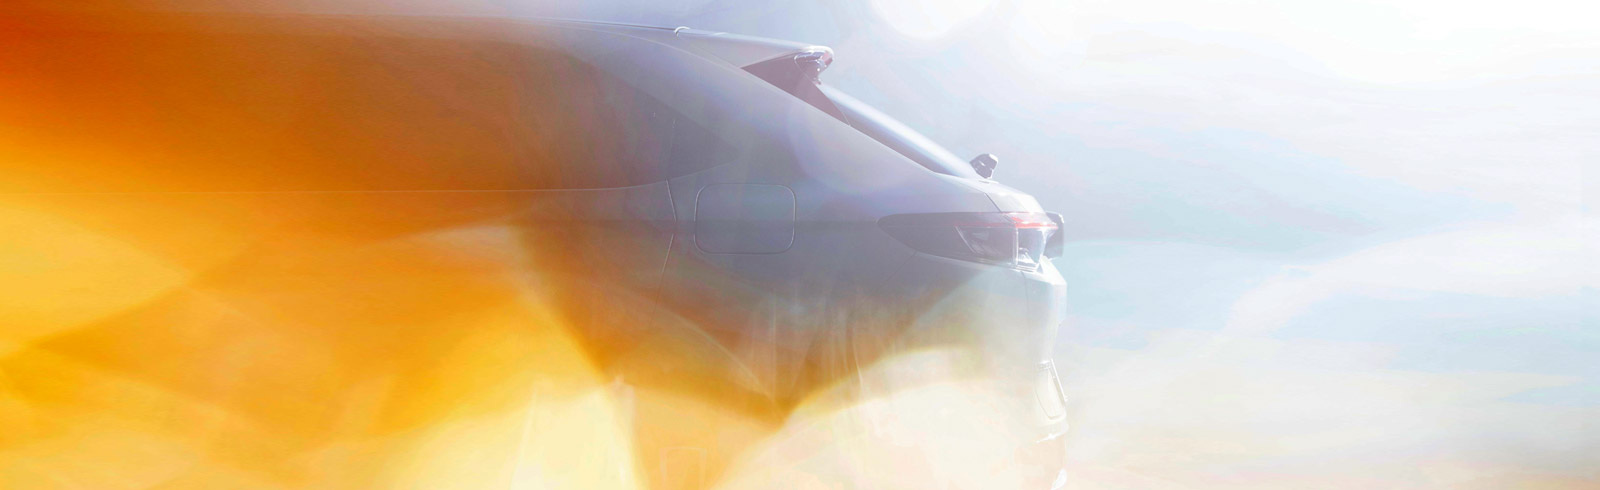 The new Honda HR-V with two-motor e:HEV powertrain will be unveiled on February 18